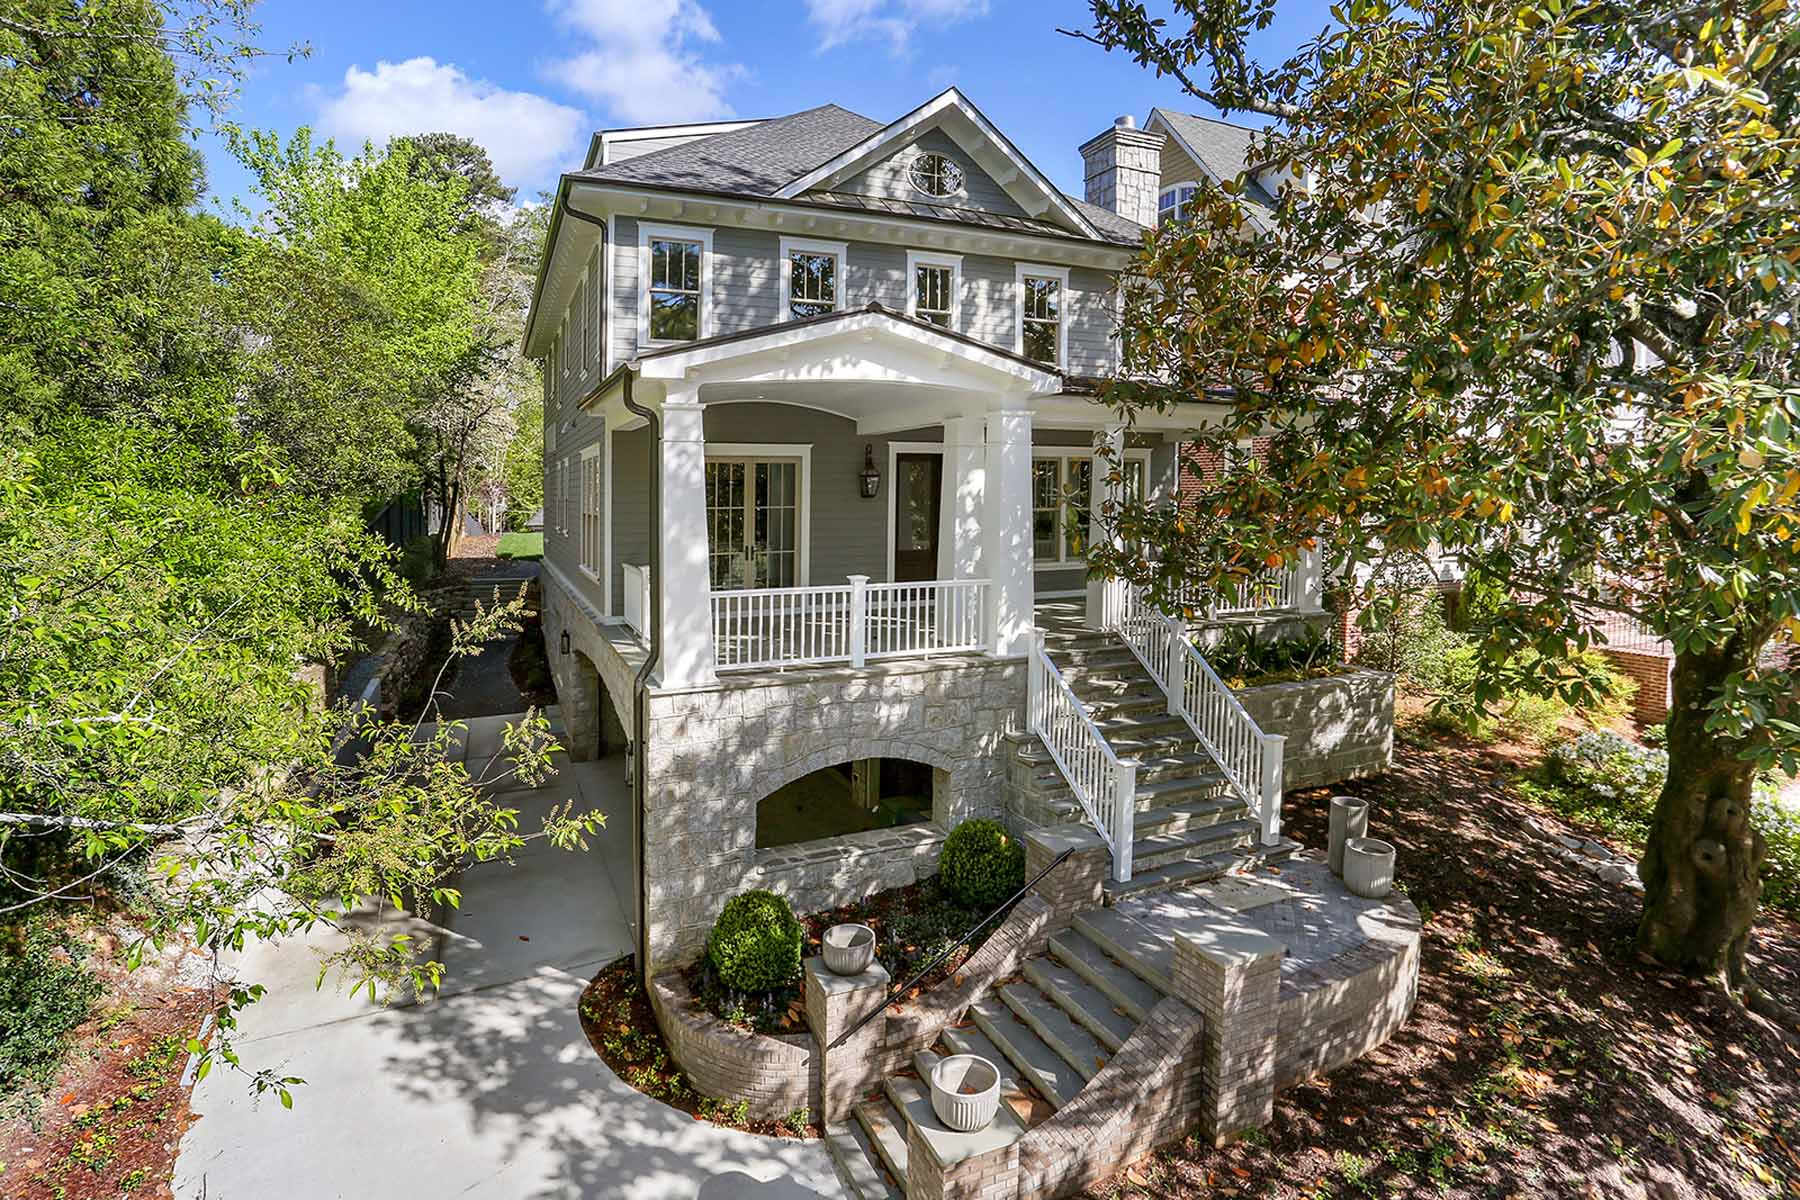 Single Family Home for Sale at New Construction With Four-Car Garage 70 Maddox Drive Ansley Park, Atlanta, Georgia, 30309 United States